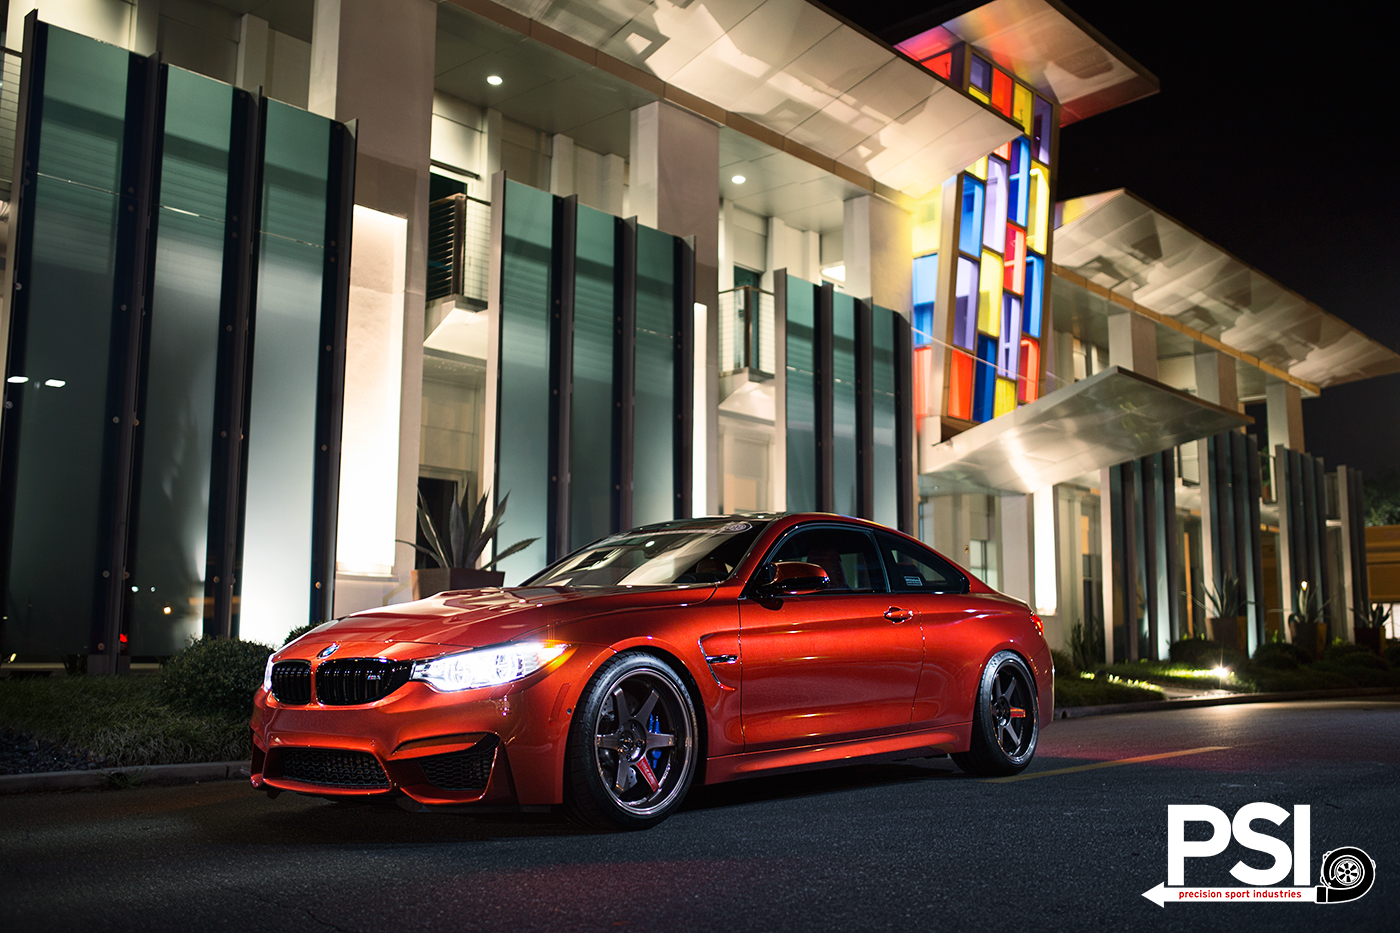 Psi S Sakhir Orange Bmw M4 Makes Some Friends Autoevolution